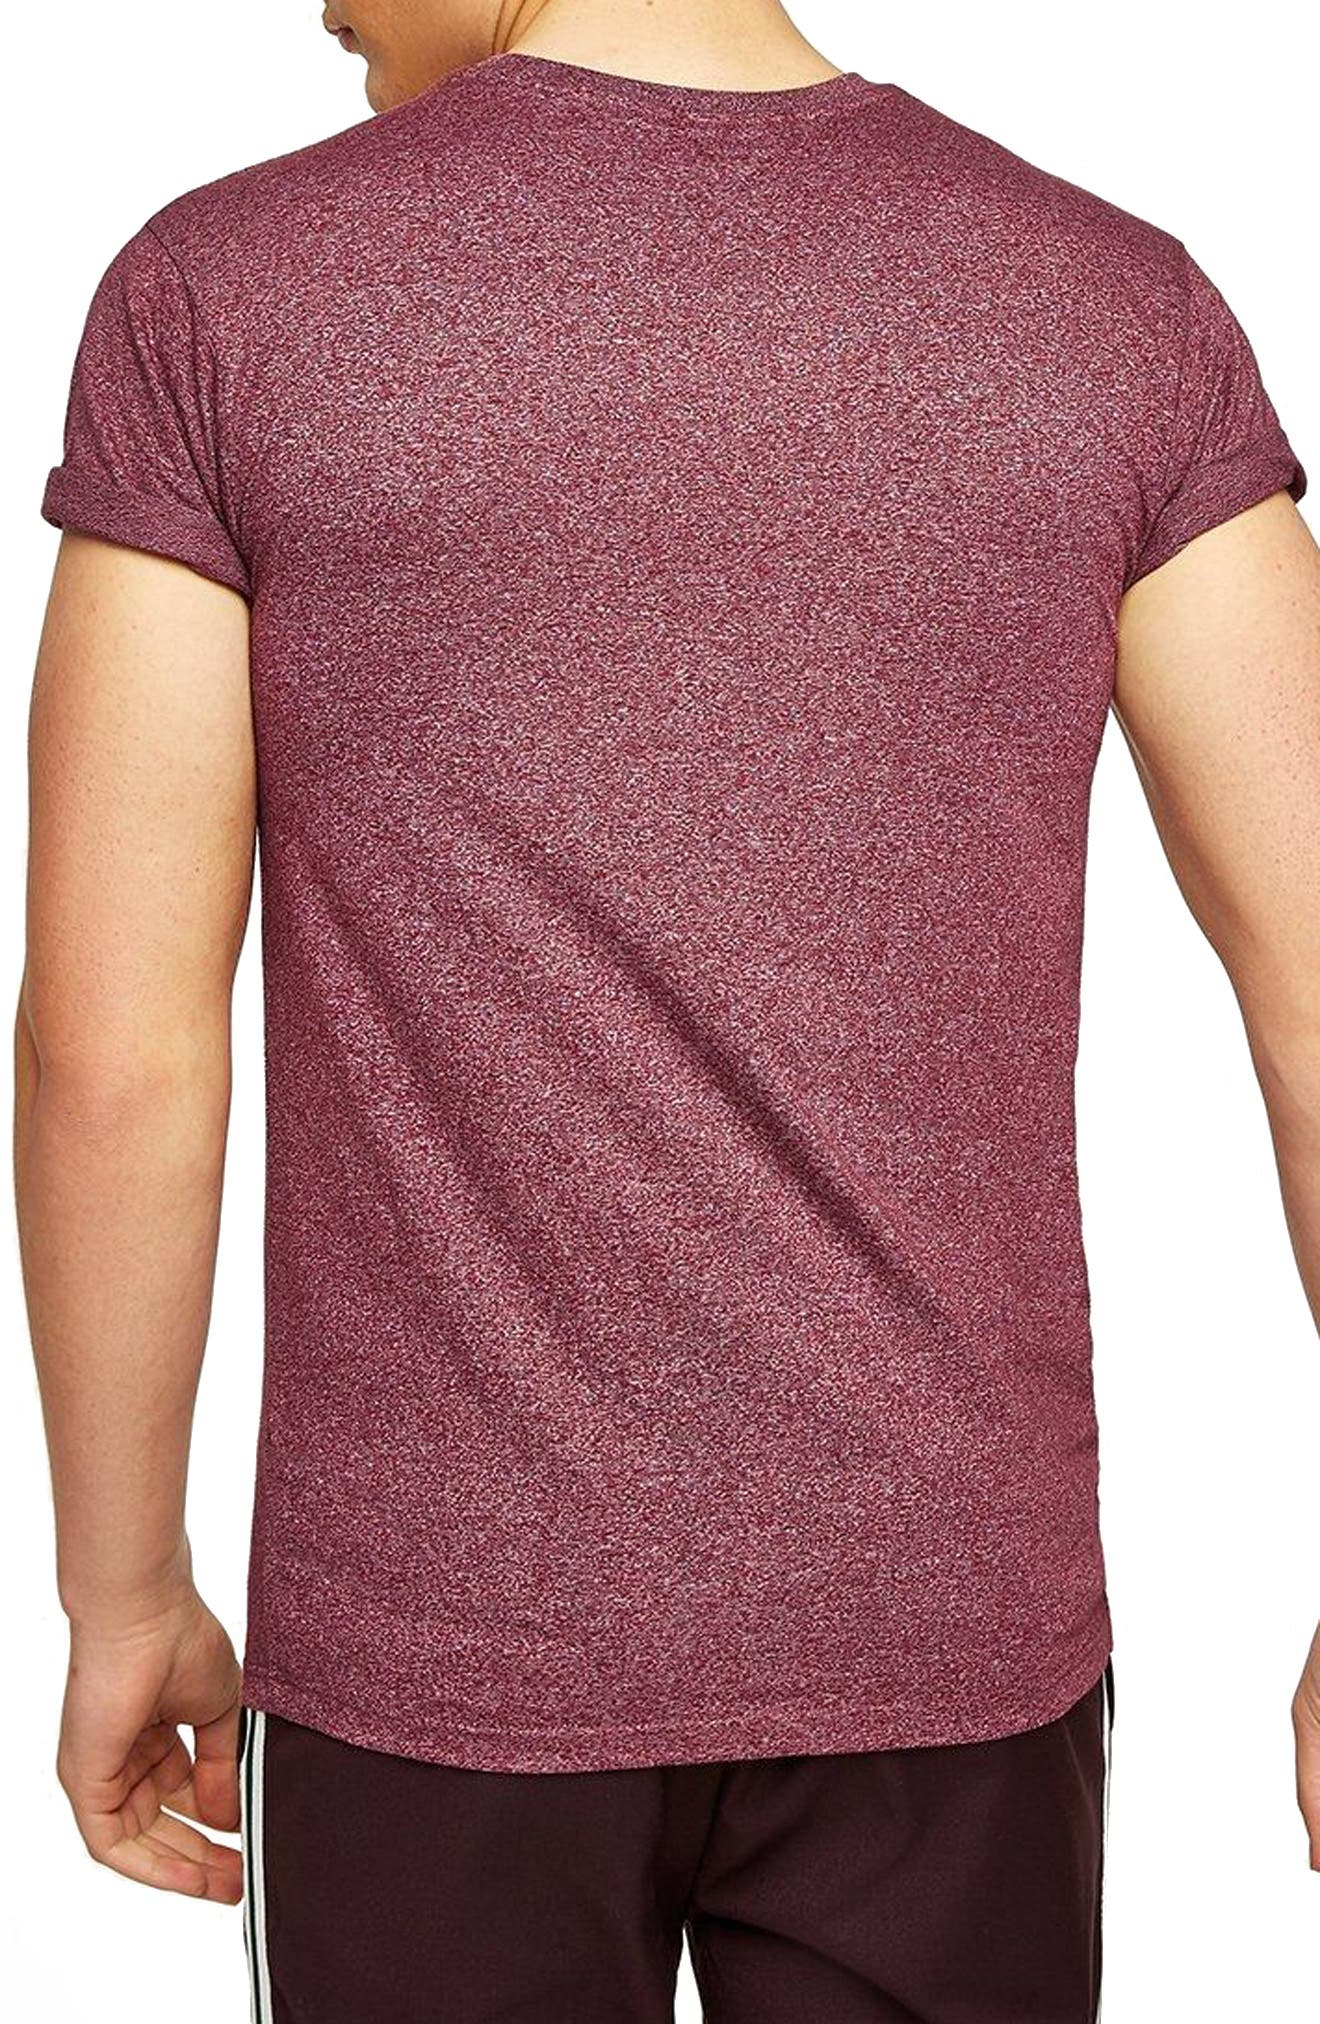 Muscle Fit Flecked T-Shirt,                             Alternate thumbnail 2, color,